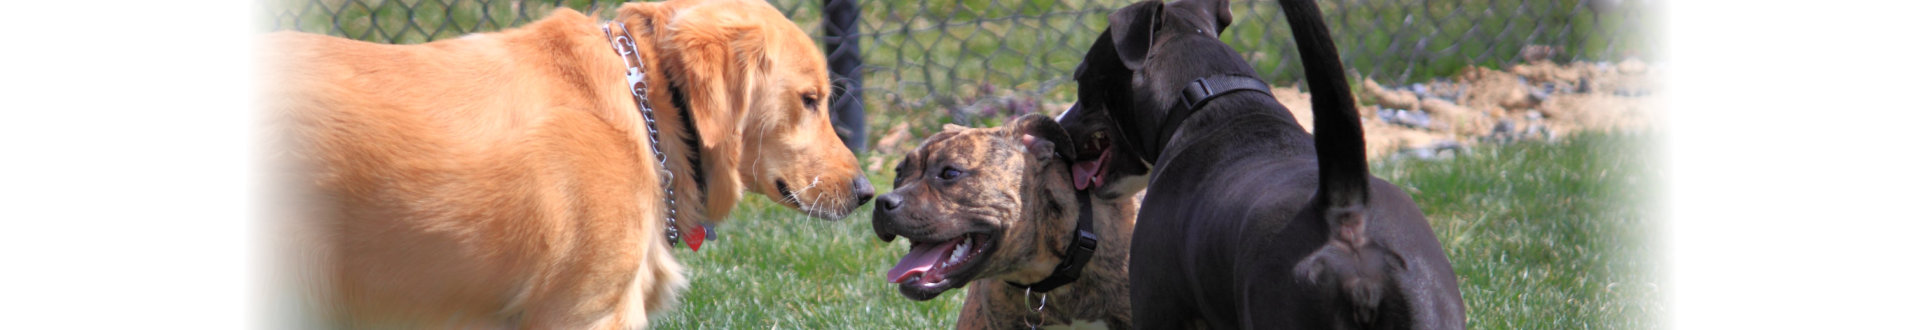 three unleashed dogs playing in dog park for stress relieving, exercise, and social